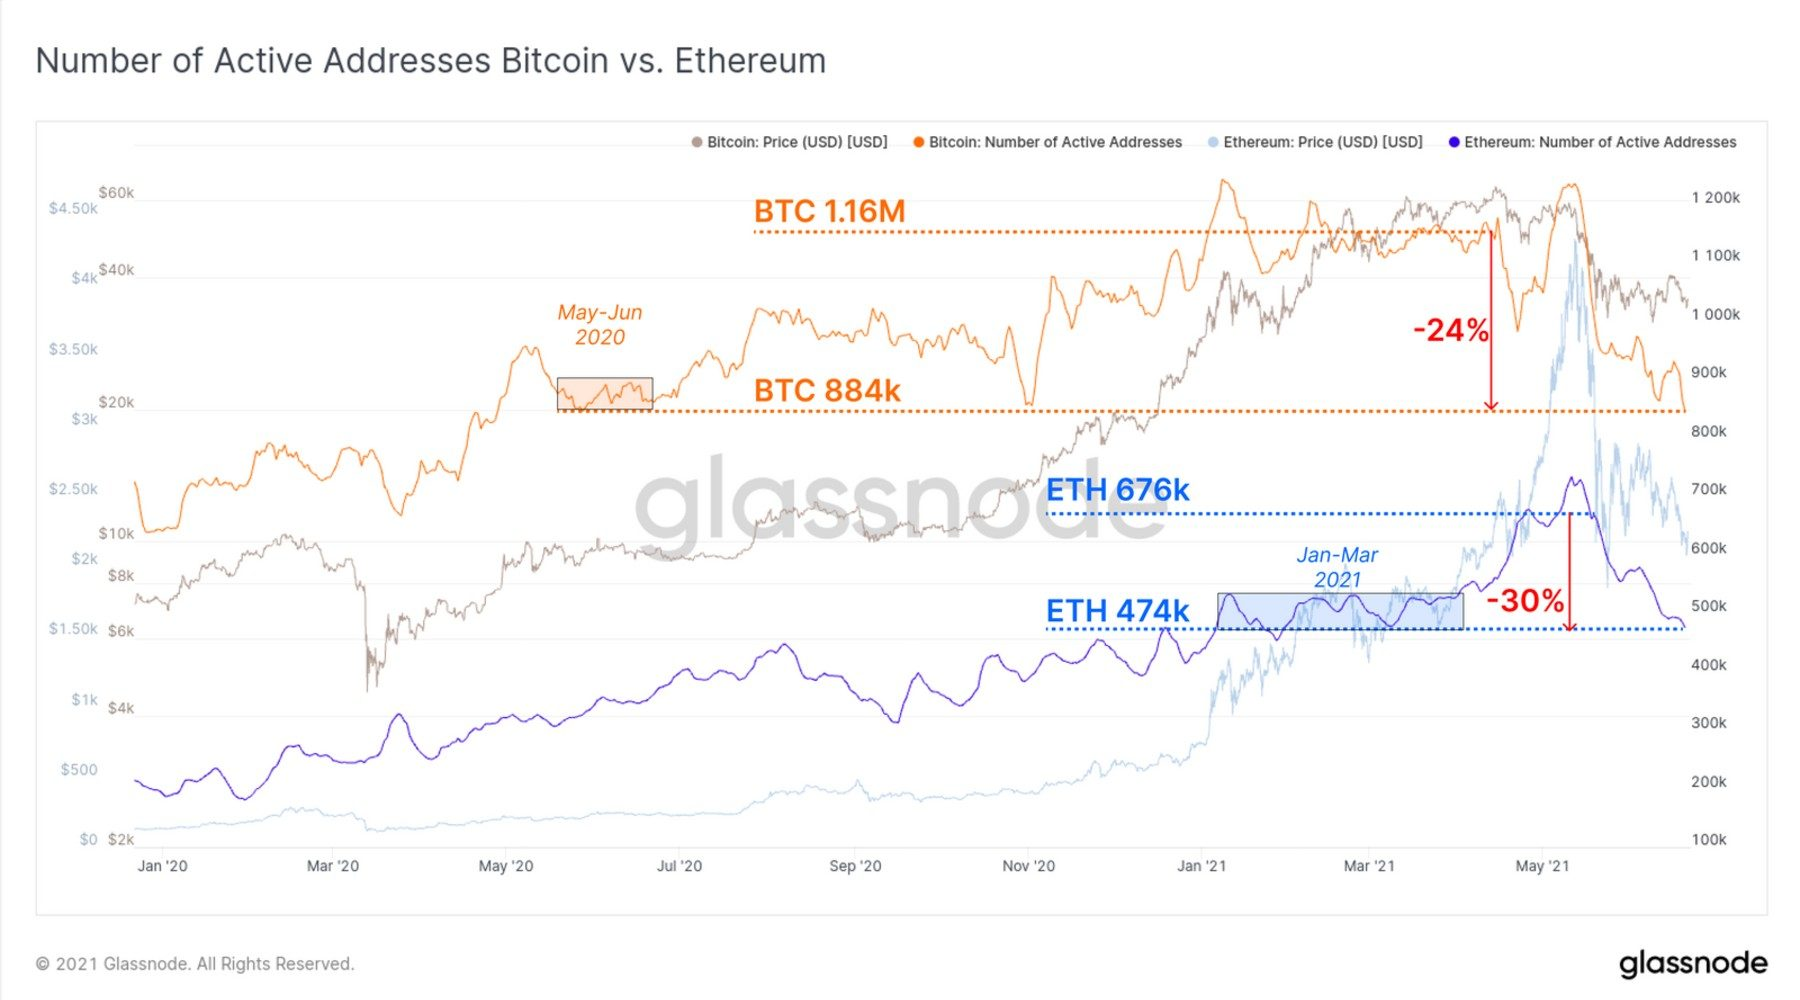 Ethereum price watch from Glassnode